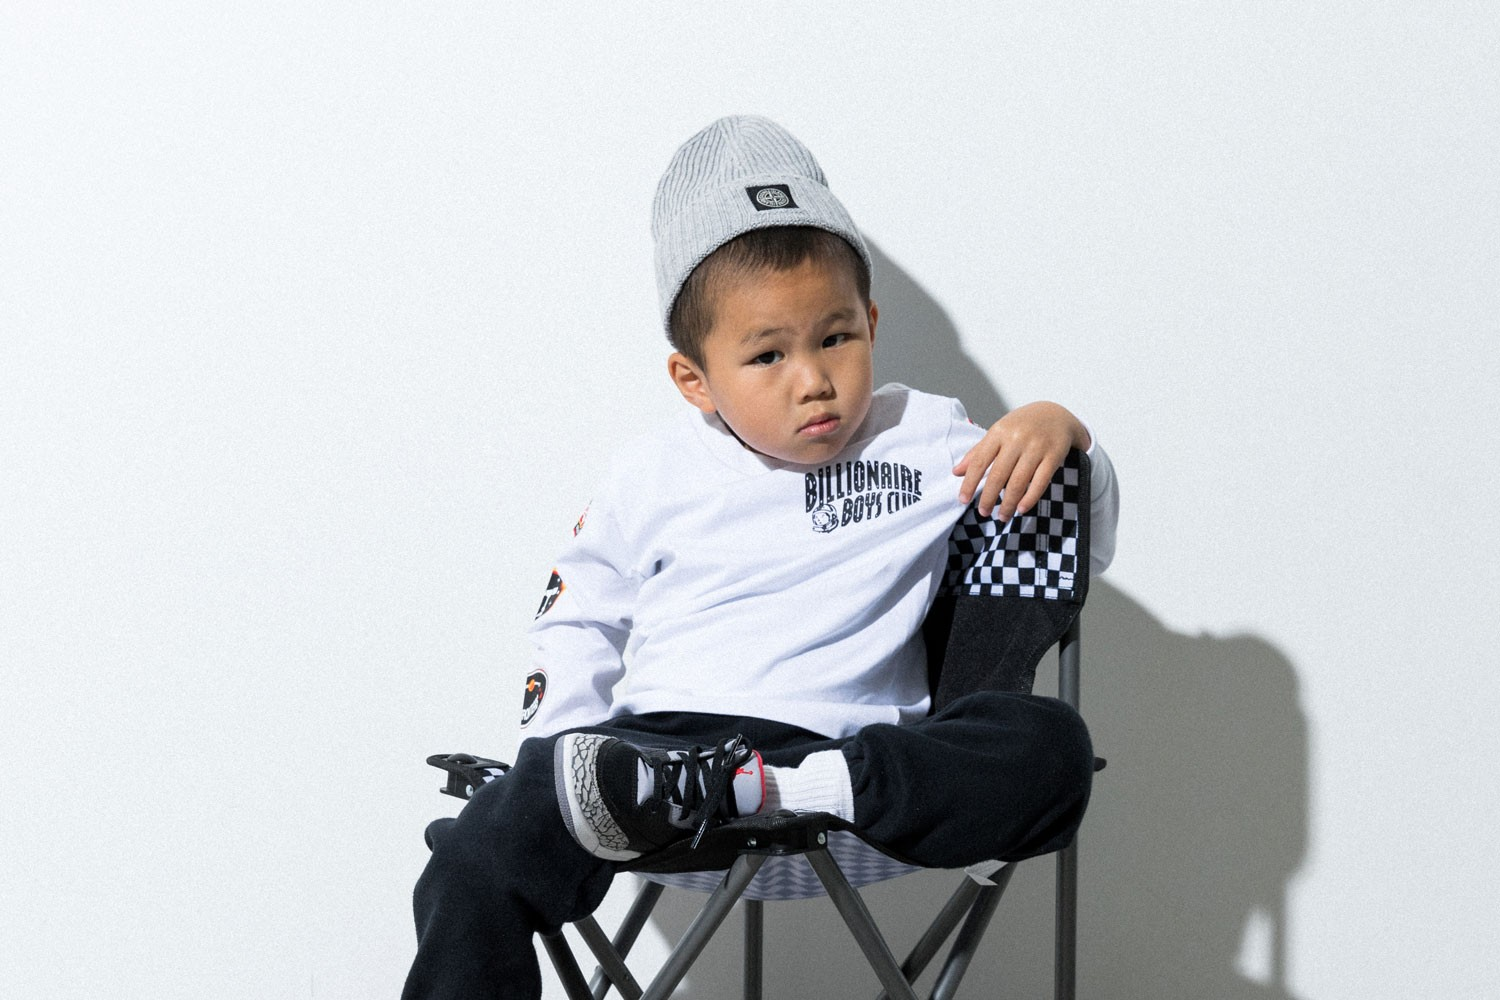 Billionaire Boys Club Kids